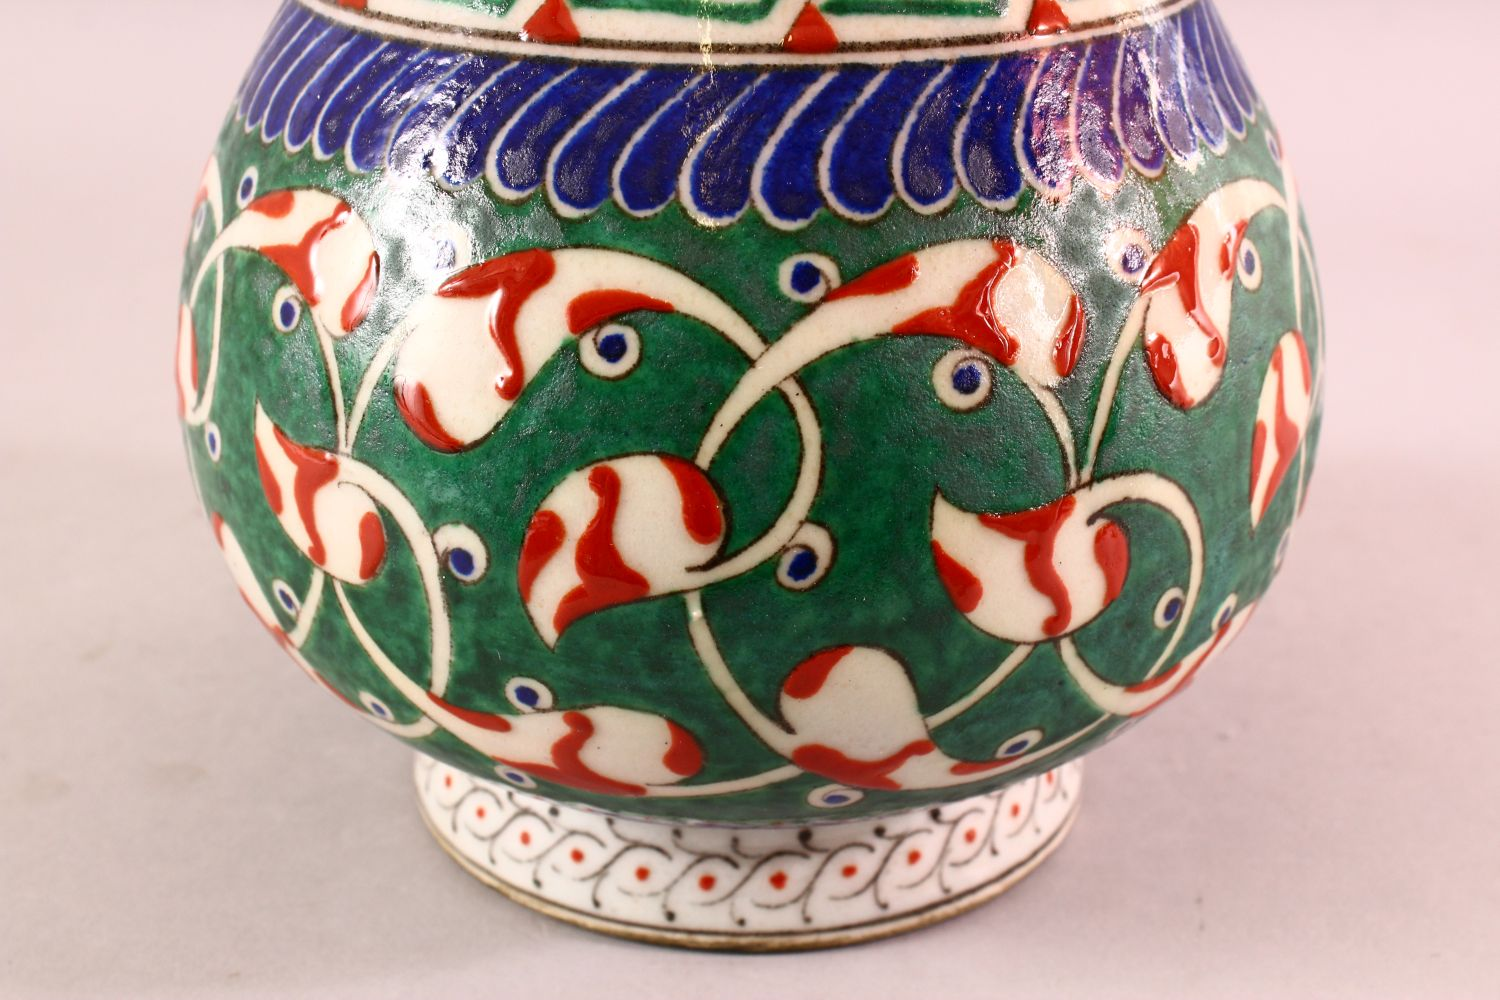 A TURKISH OTTOMAN 18TH CENTURY IZNIK VASE, with green and red motif decorations, 26cm - Image 3 of 4